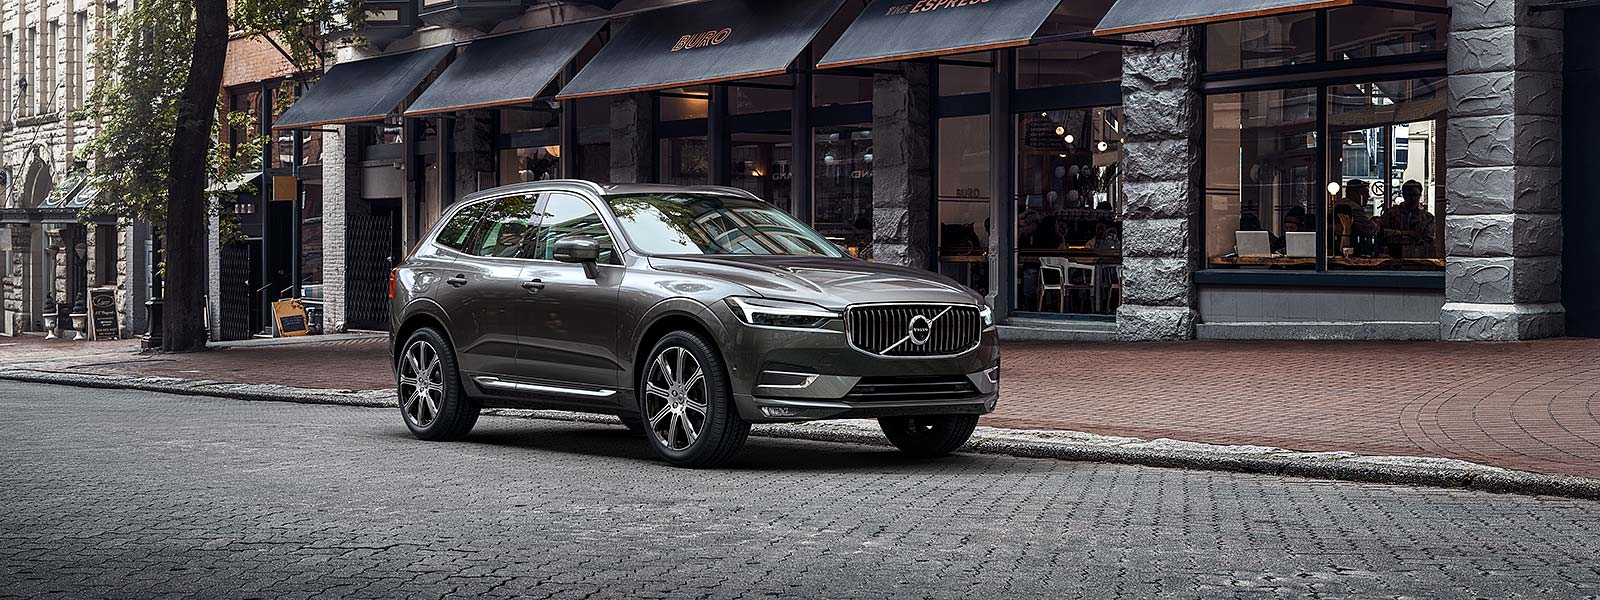 awd suv must s advice to selling lease deals buying volvo how have buy